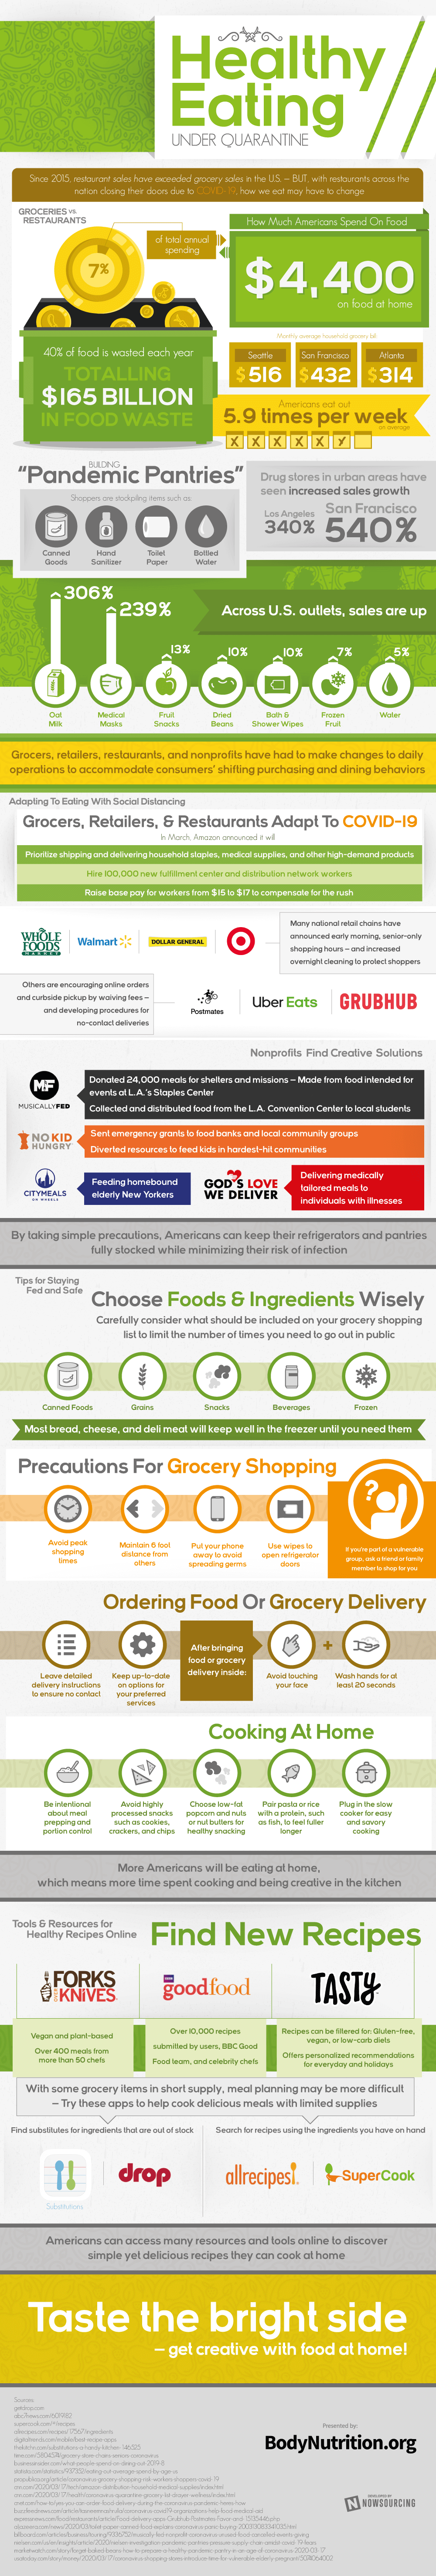 Healthy Eating Under Quarantine Infographic